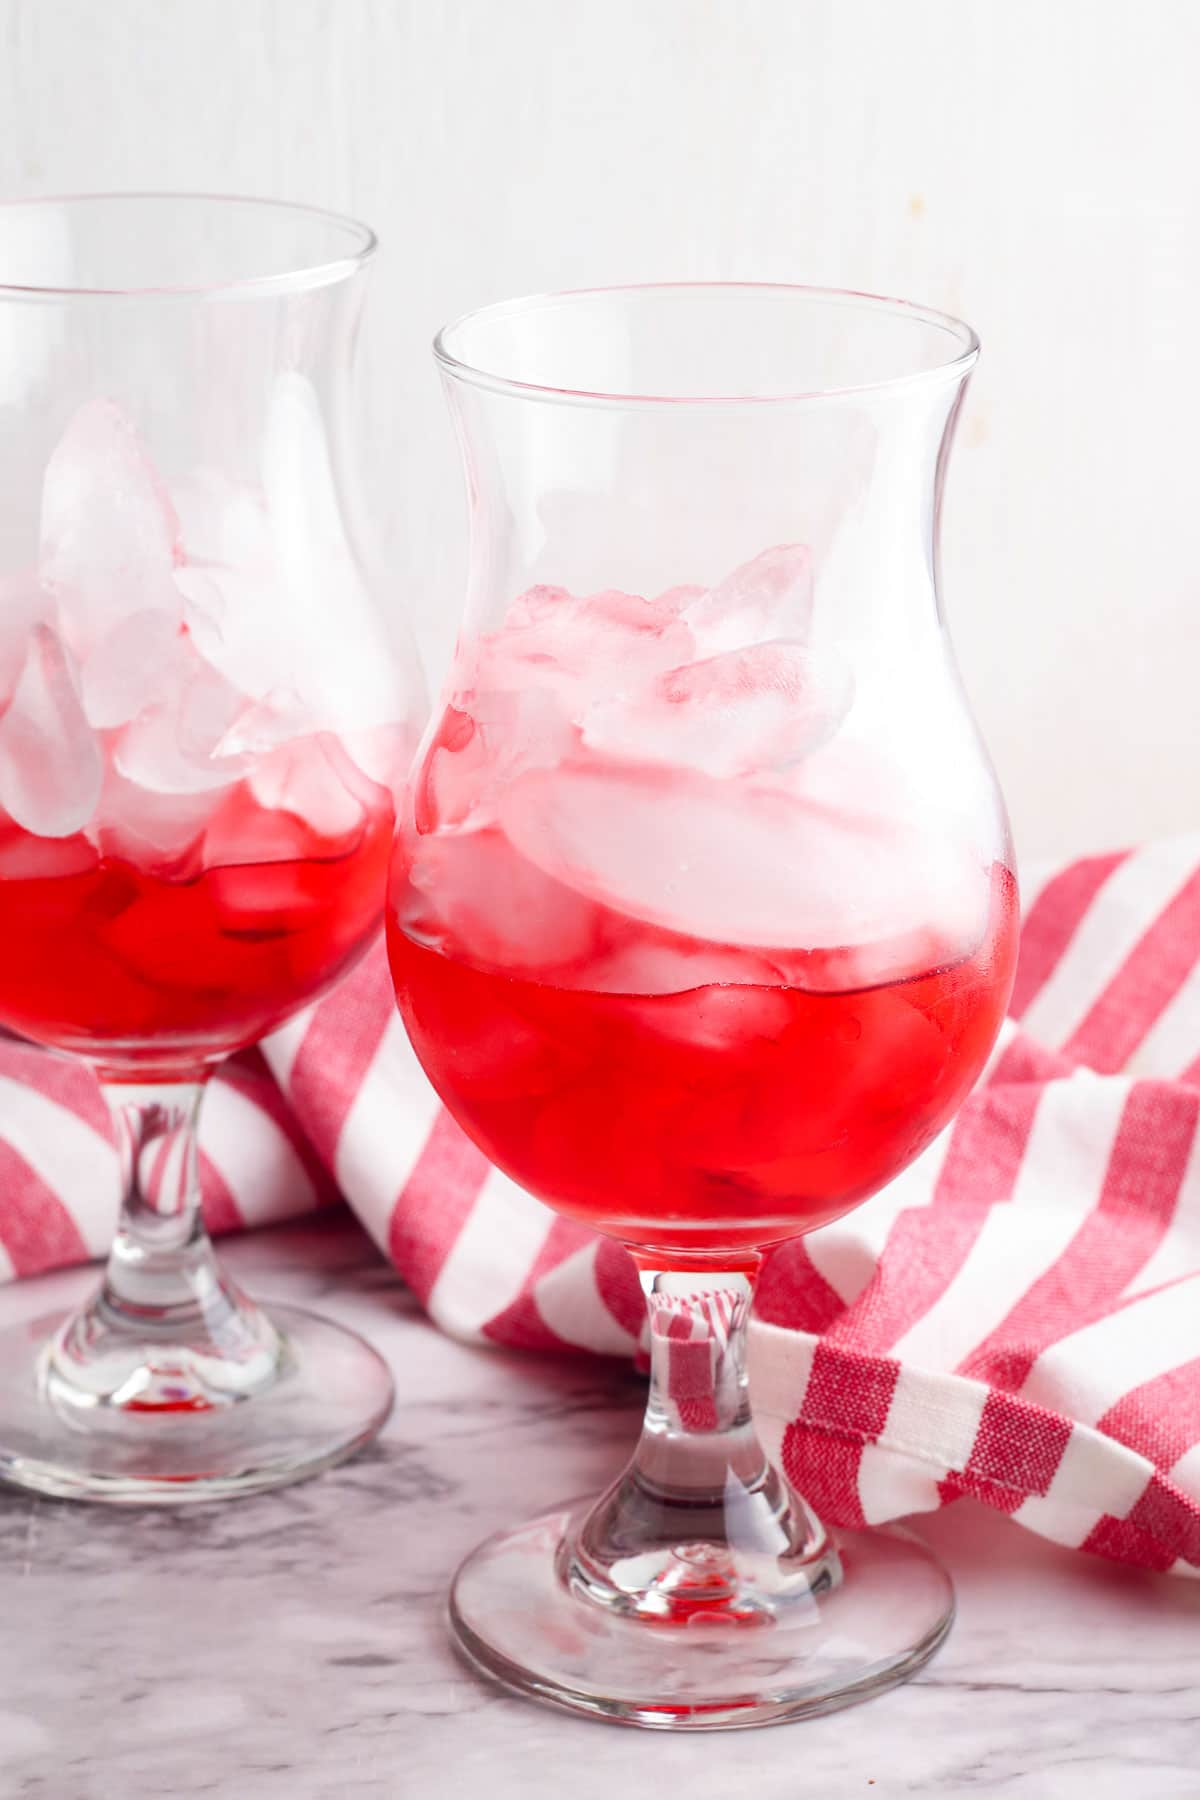 grenadine in a glass with ice